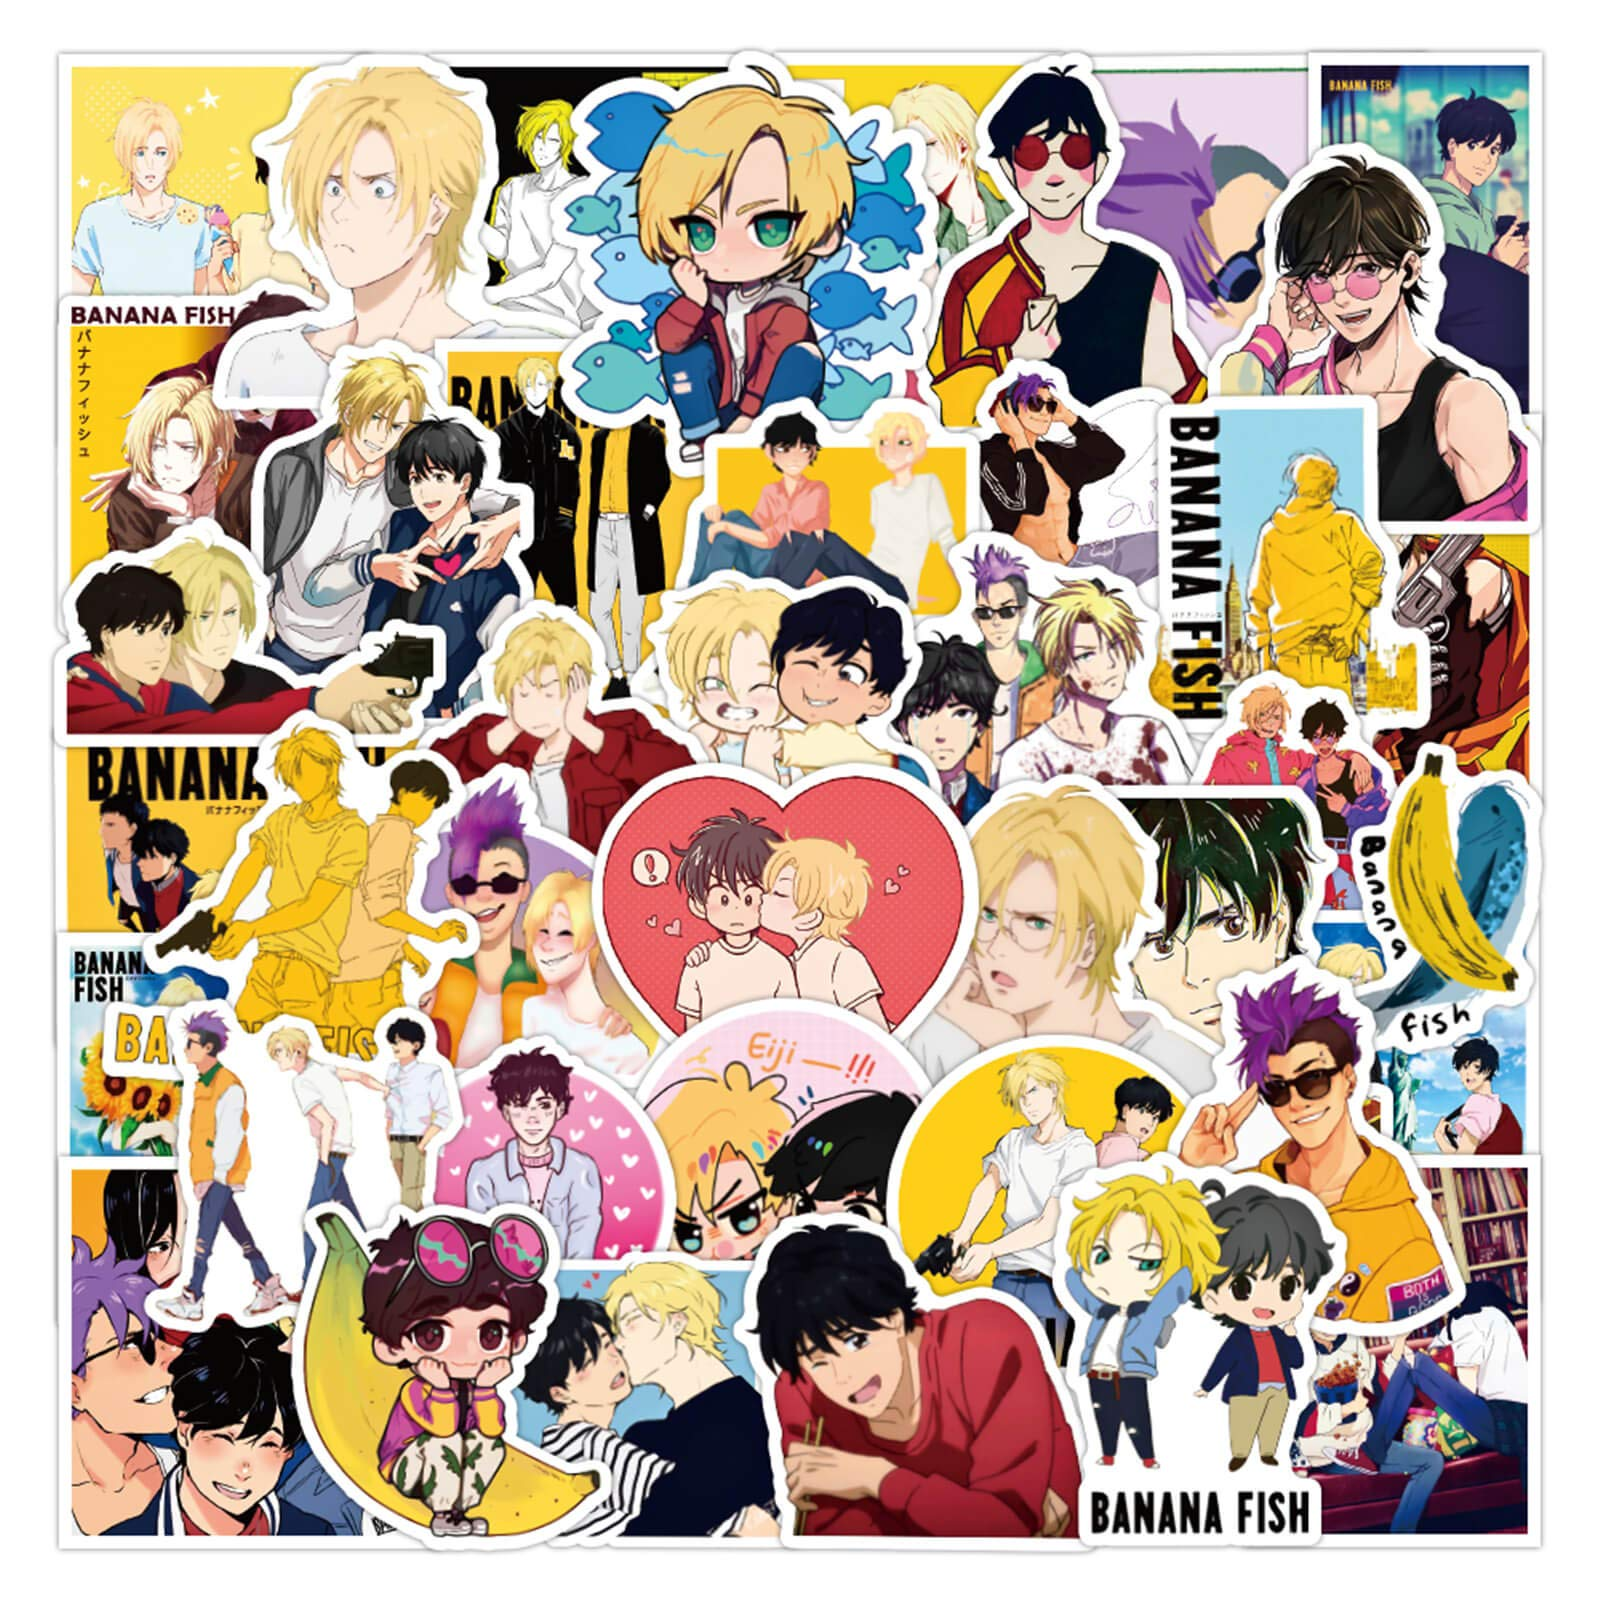 Cute Anime Stickers Banana Fish Stickers 50PCS Waterproof Vinyl Decals for Water Bottle Japanese Anime Decals Decor for Laptop, Luggage, Skateboard, Guitar Trendy Stickers Graffiti Patches